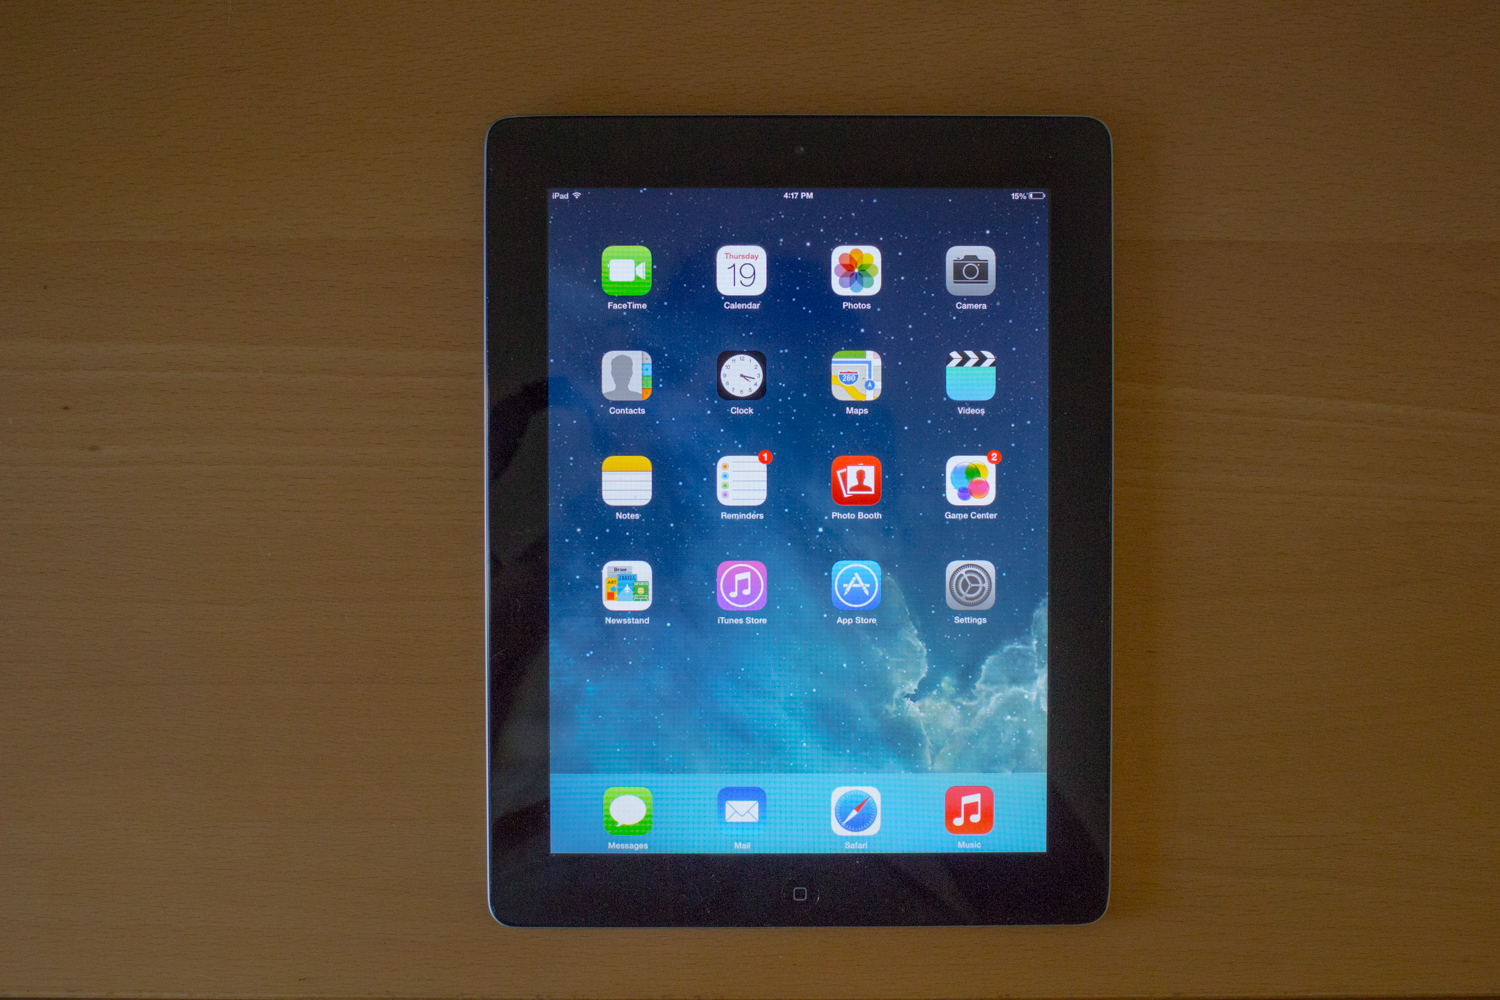 Don't let me down, Apple: iOS 7 on the iPad 2 | Ars Technica